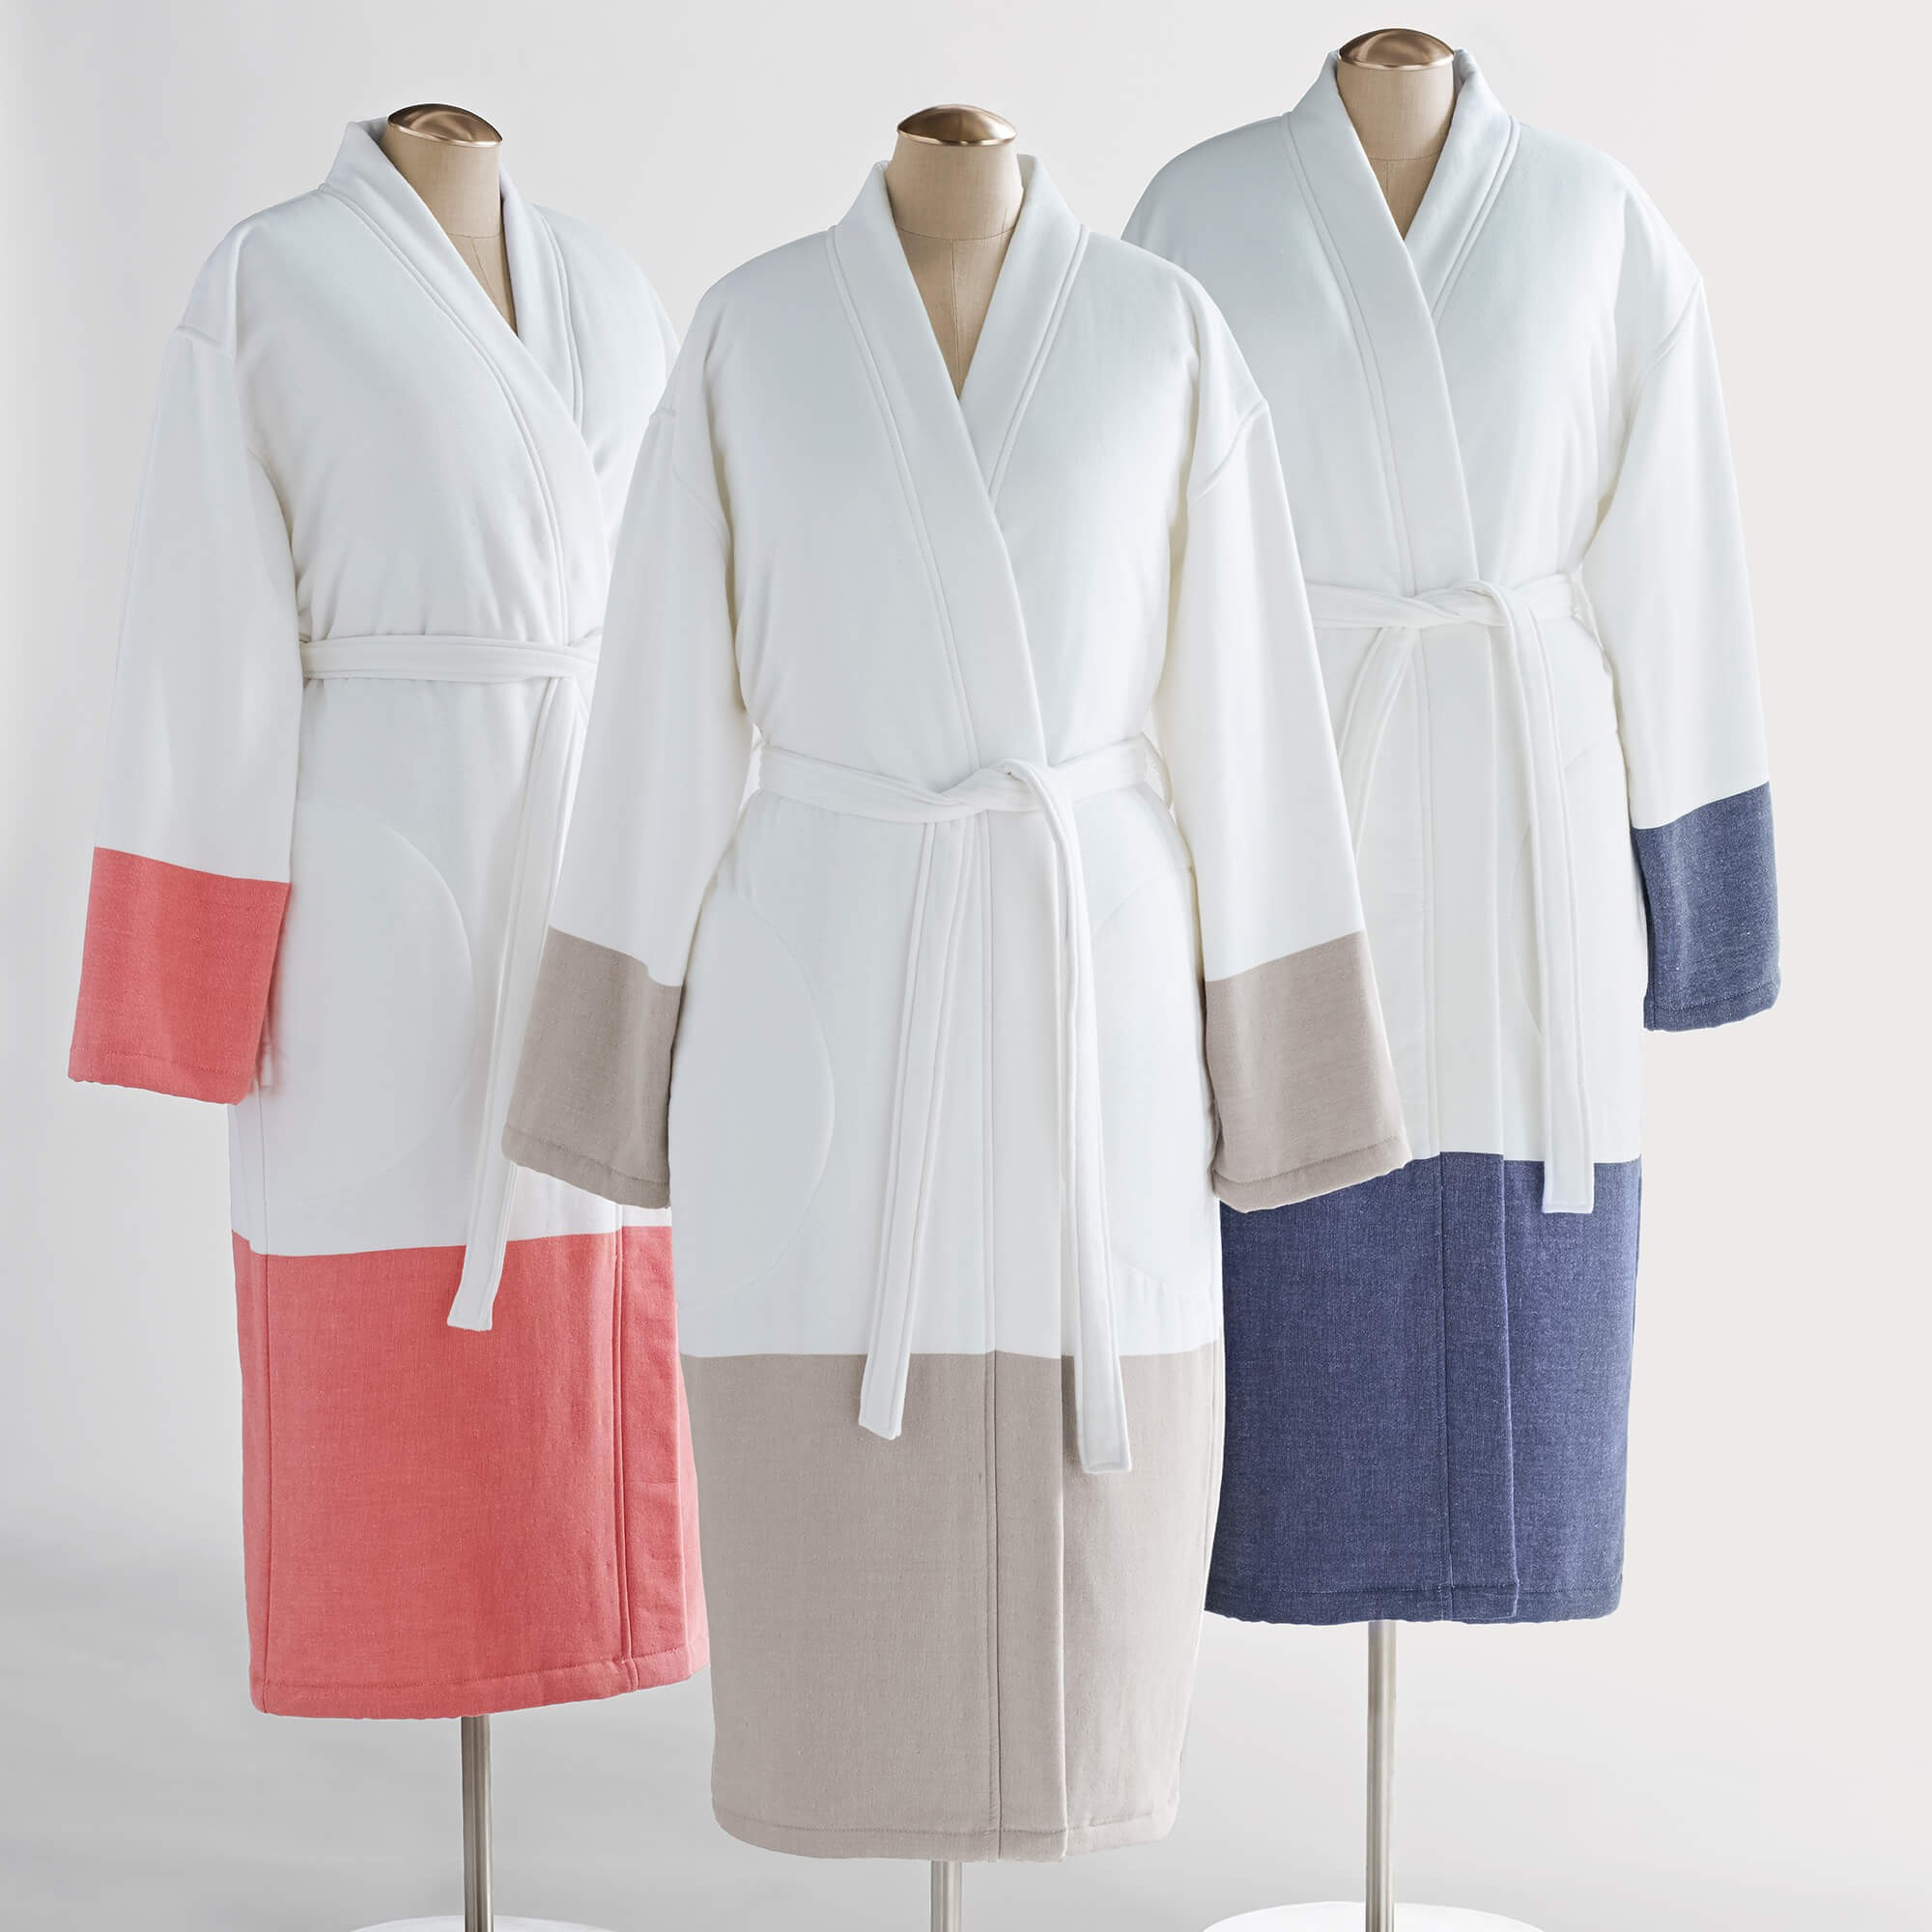 bridesmaids robes kassatex